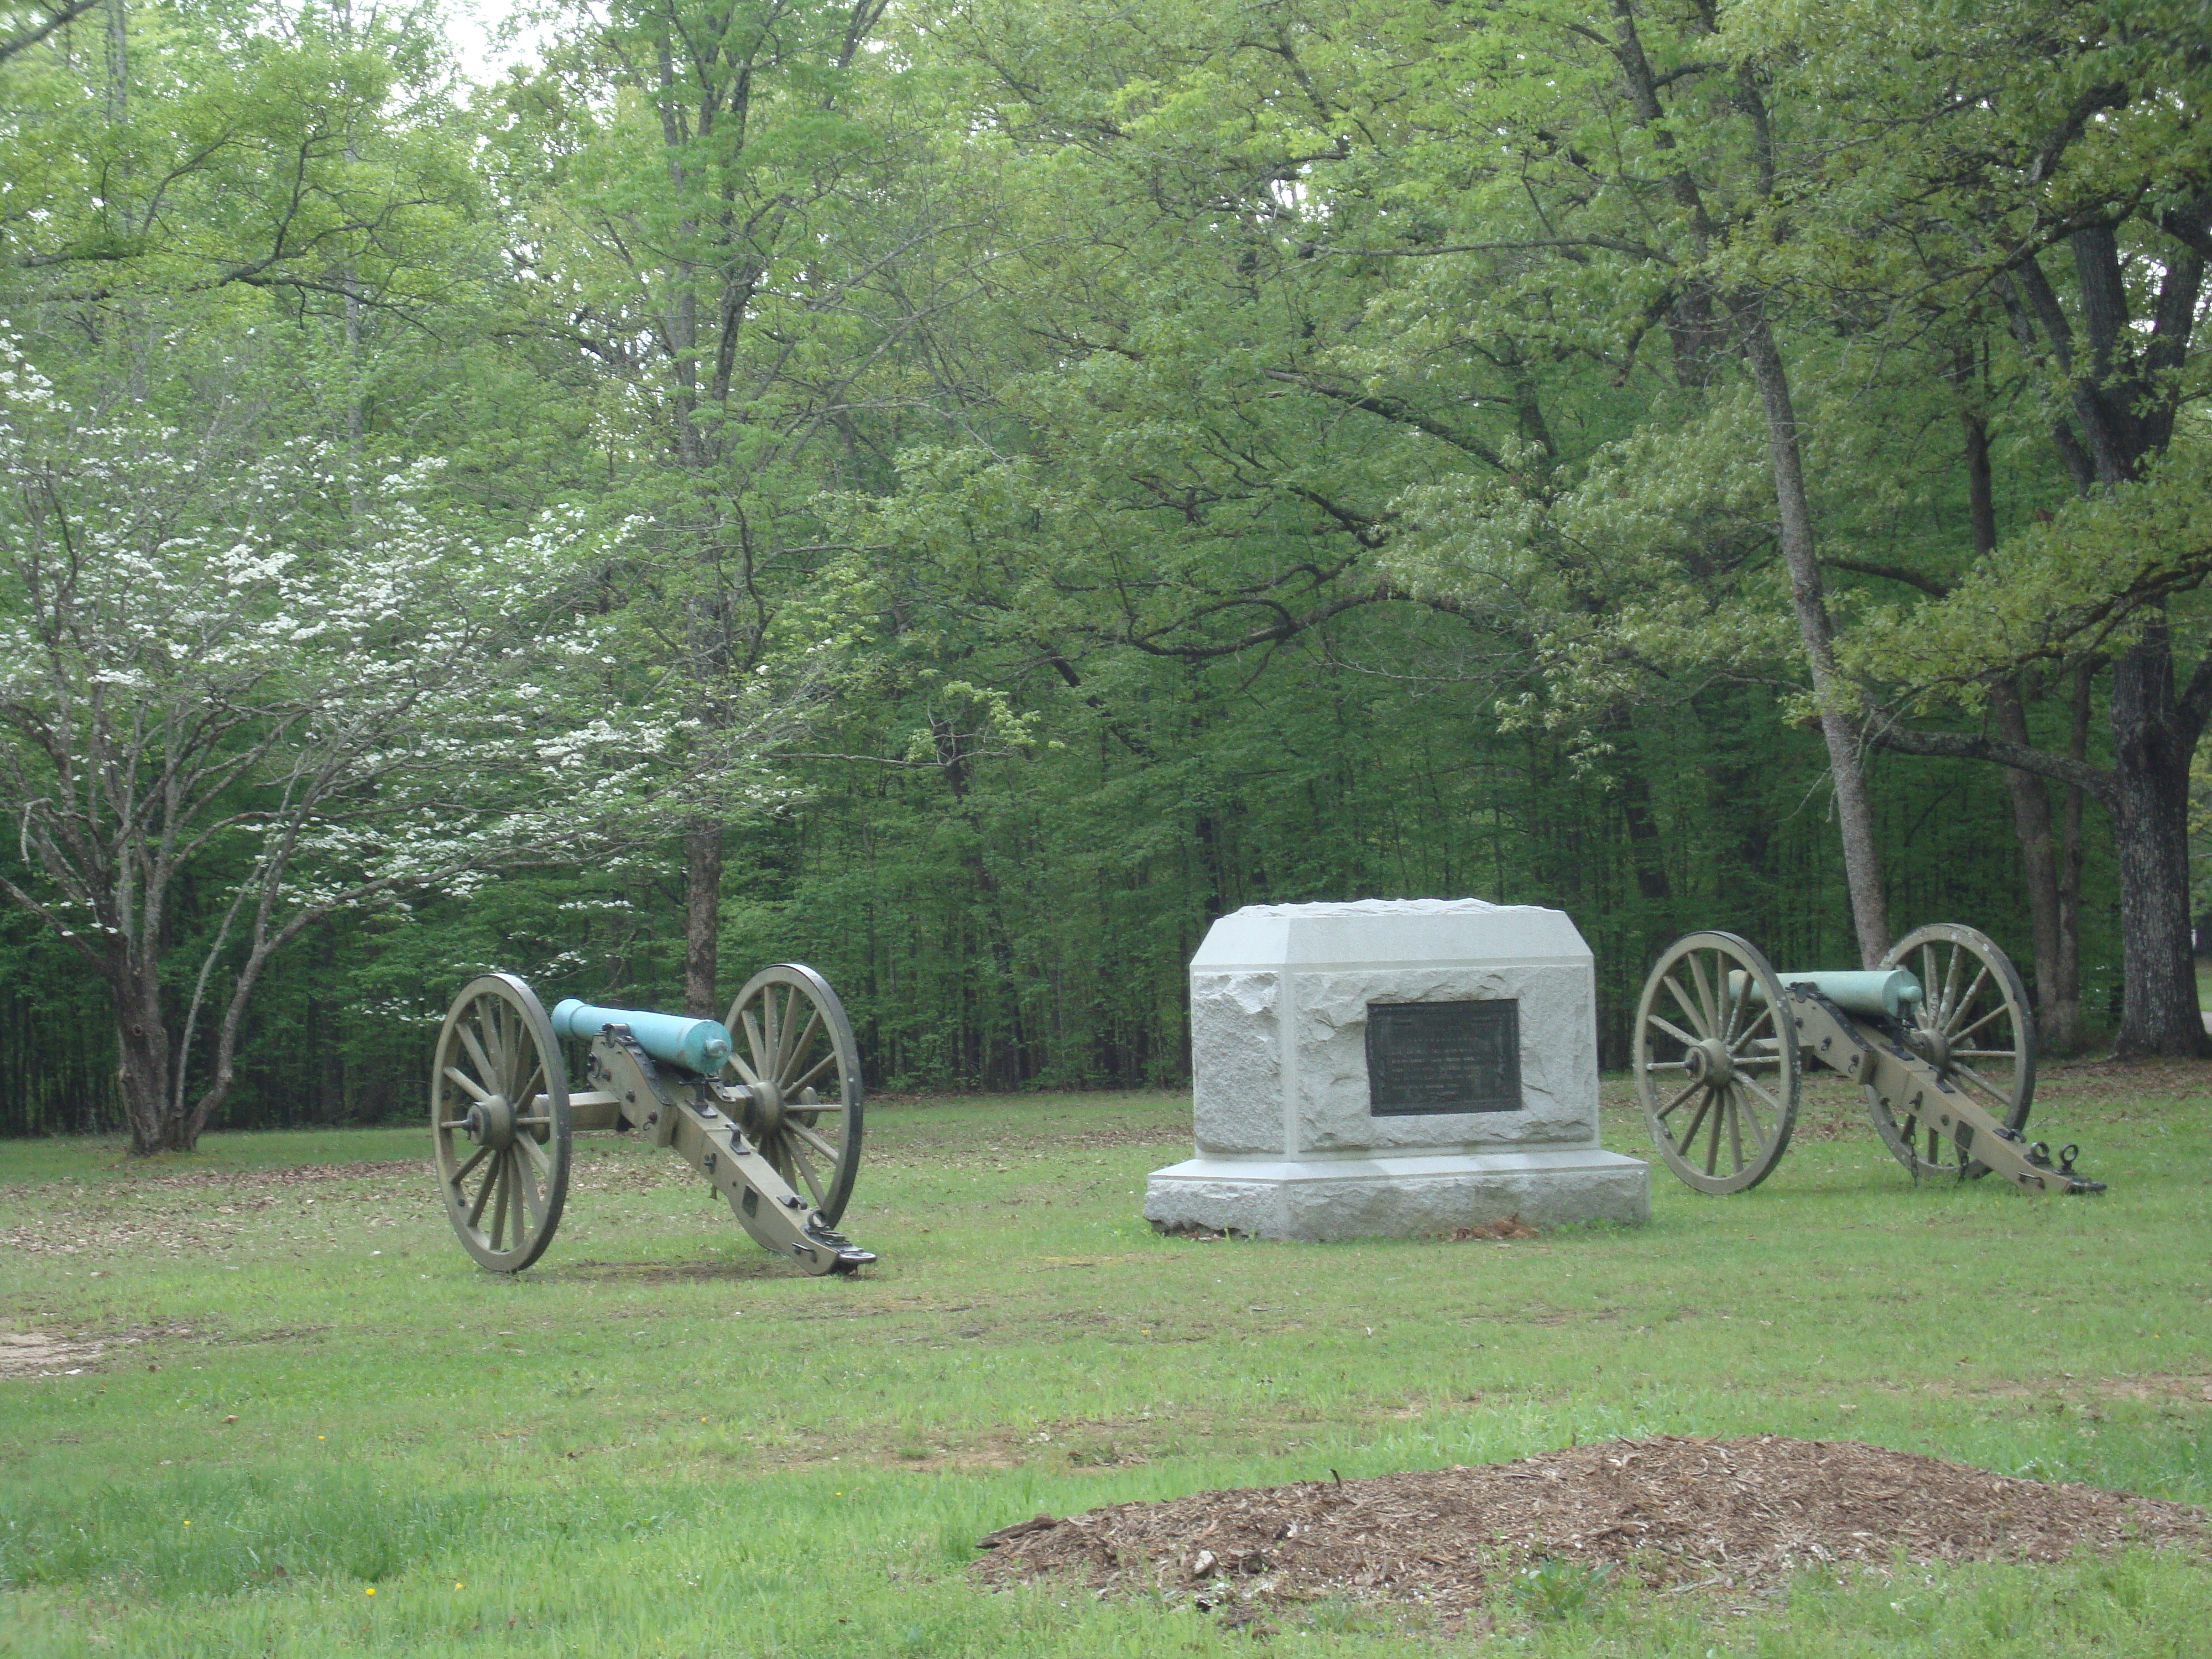 the events during the battle of shiloh The battle of shiloh has been more persistently misunderstood than any   revolutionary battle of the civil war, it is useful to reflect on the battle of shiloh in   events at shiloh demonstrated that ulysses grant had the.